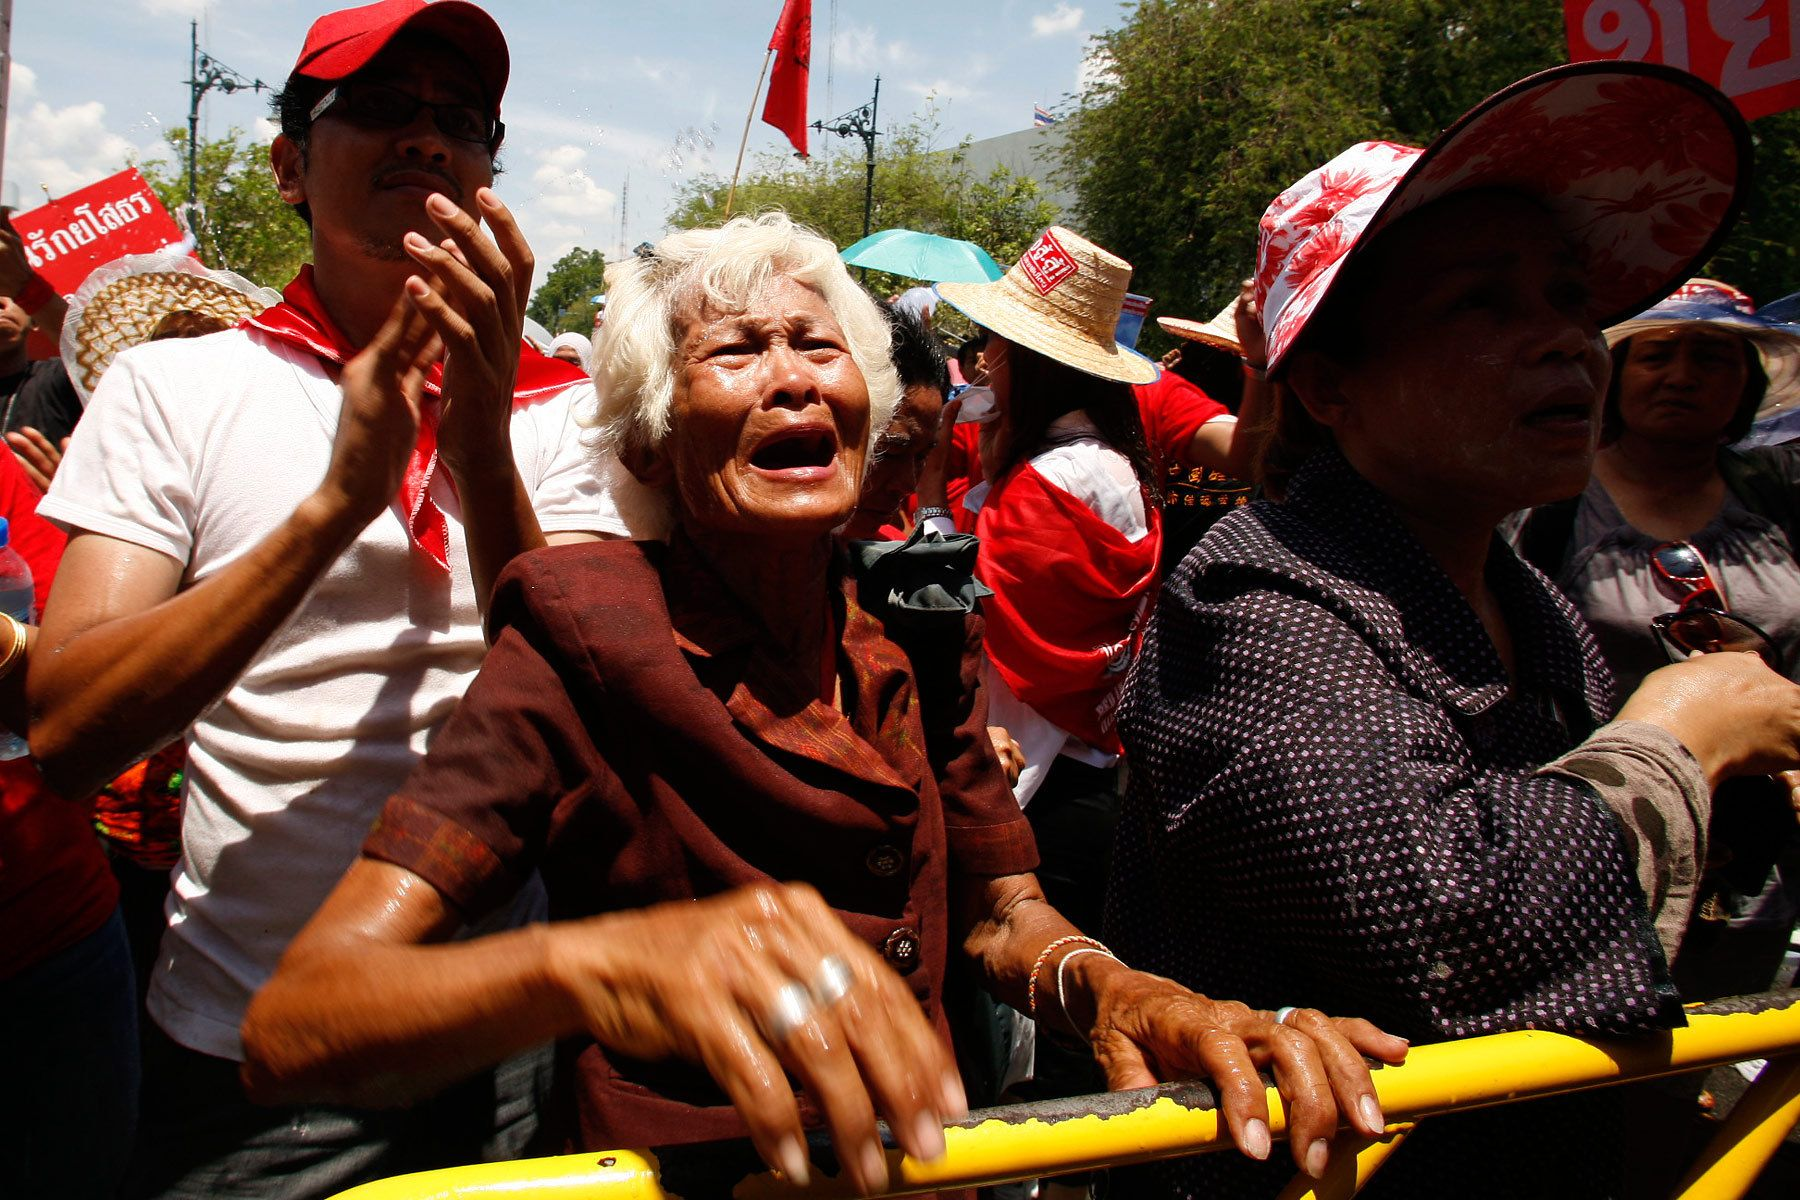 An elderly woman of the anti-government United Front for Democracy against Dictatorship (UDD) cries as she learns their leaders have called to halt their protest at Government House. Two days of rioting by the UDD left 2 people dead, 100 injurued.